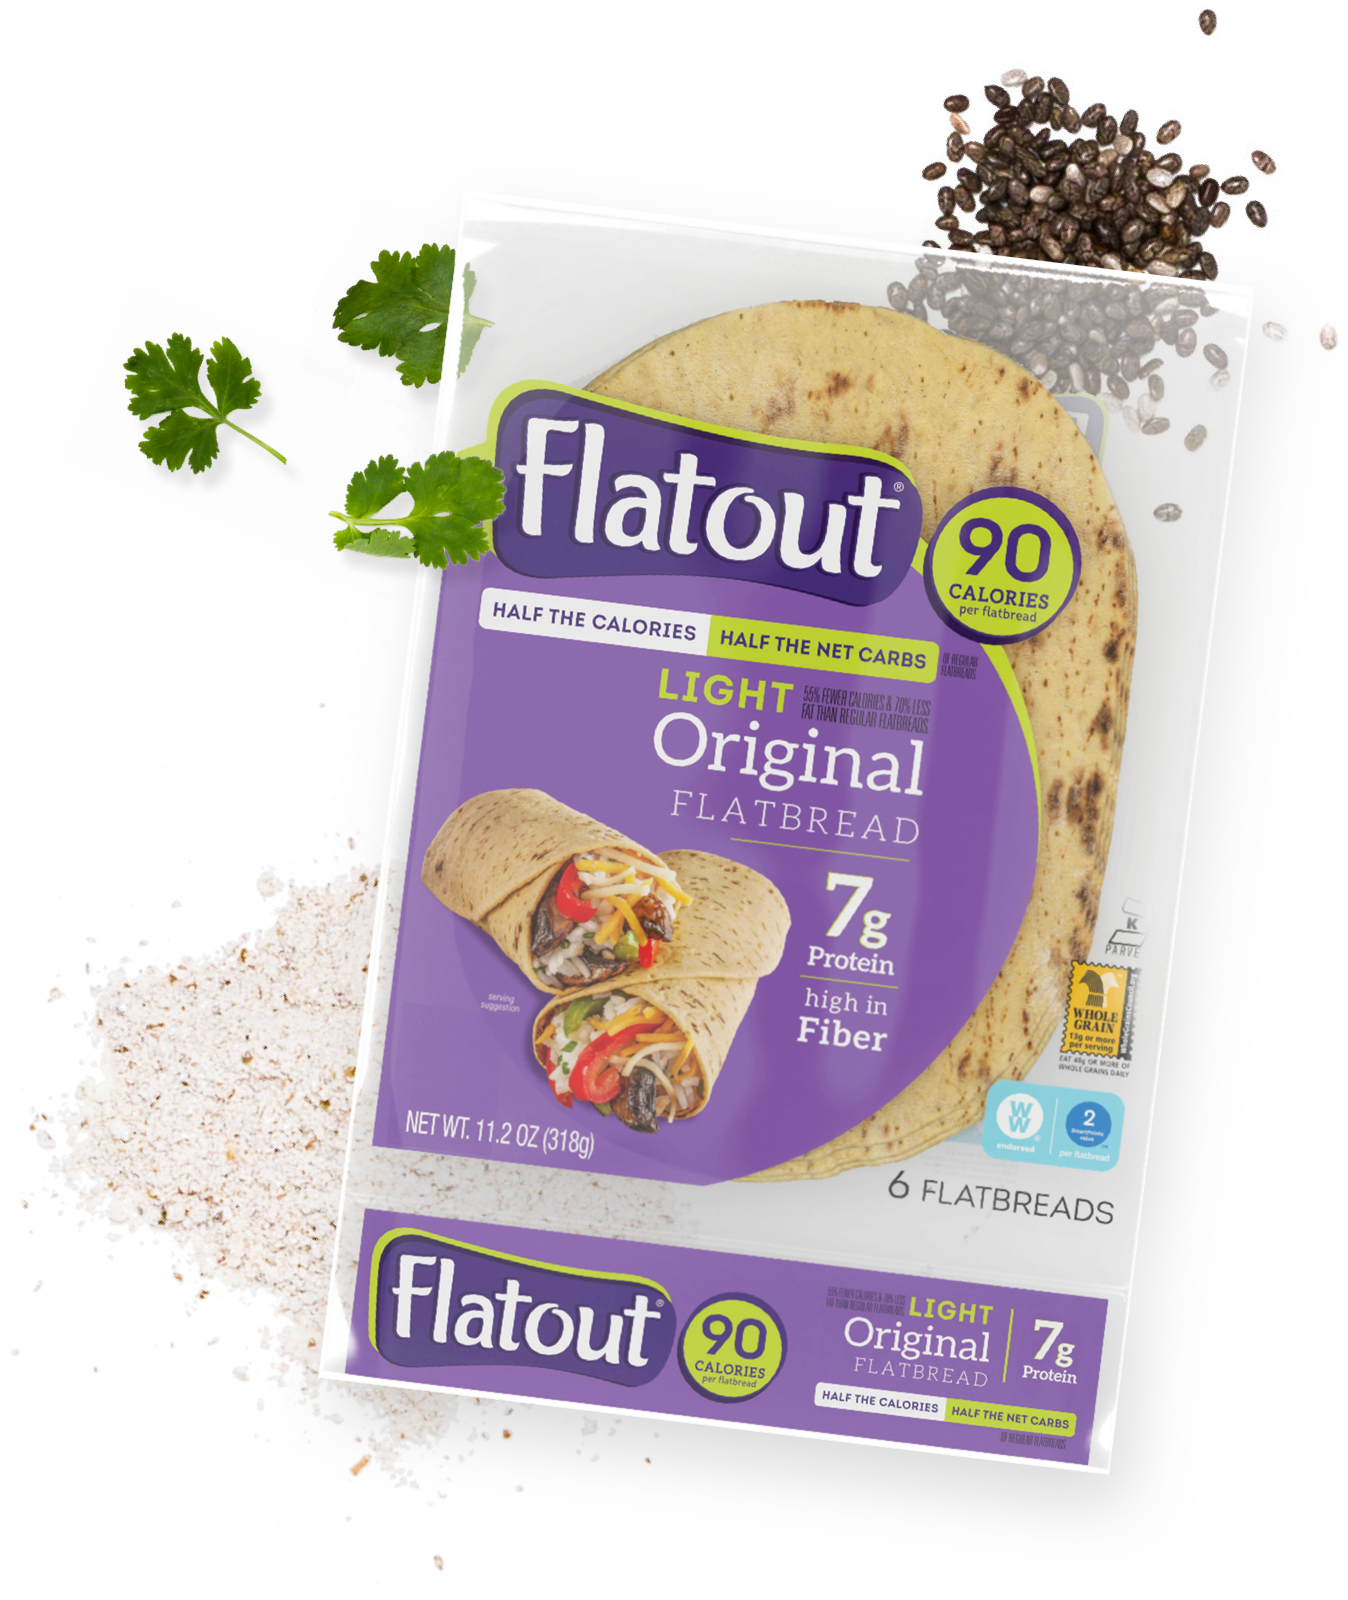 Flatout 90 calories light original flatbread